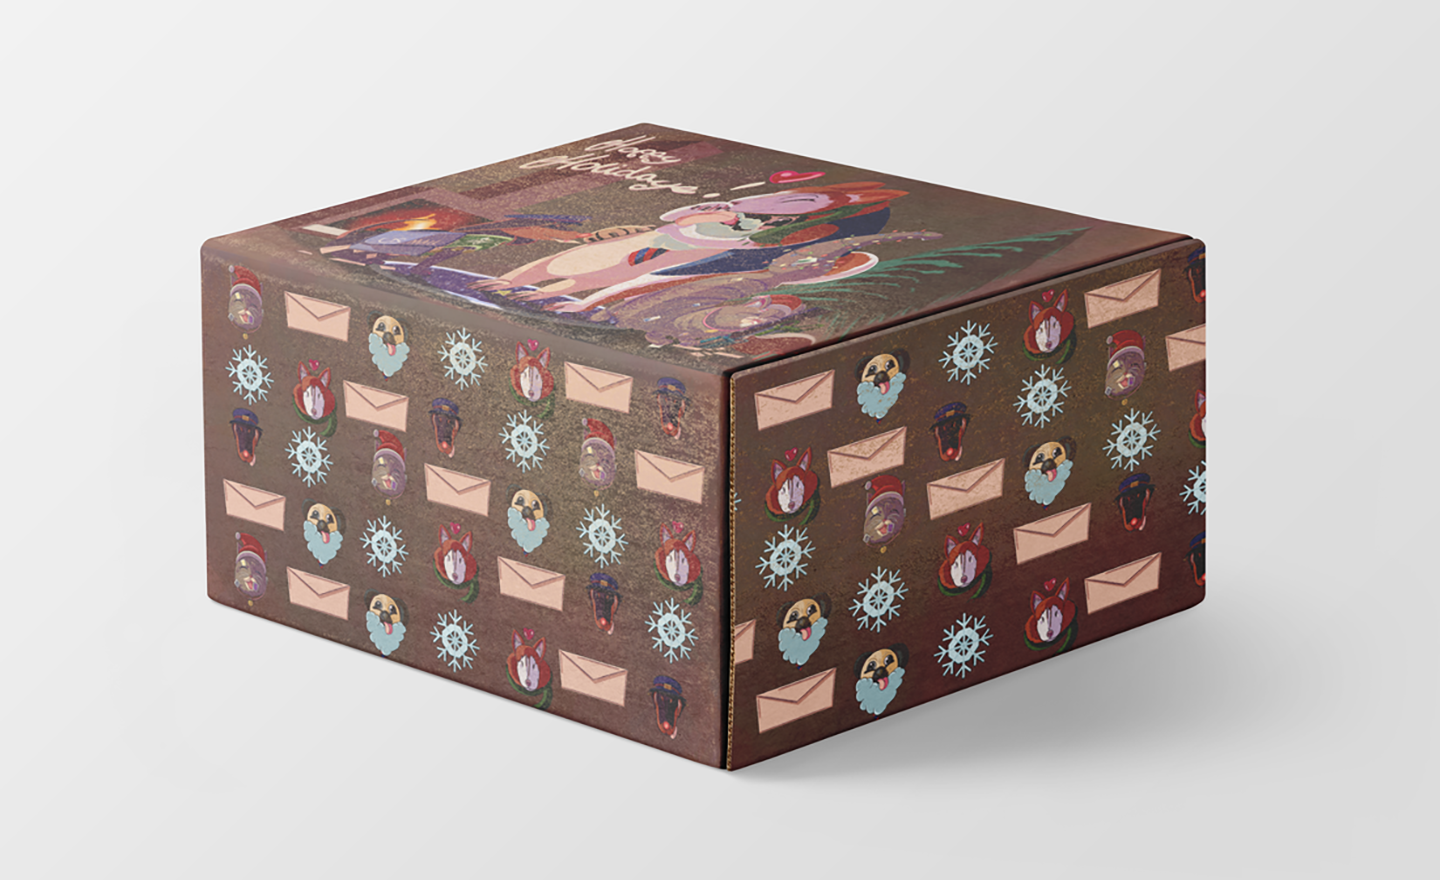 This USPS holiday project consists of a mock-up and two illustrations, one illustration on the top of the box and one around the sides of said box. The top illustration consists of four animal characters who work at a small USPS facility. A pug who is the